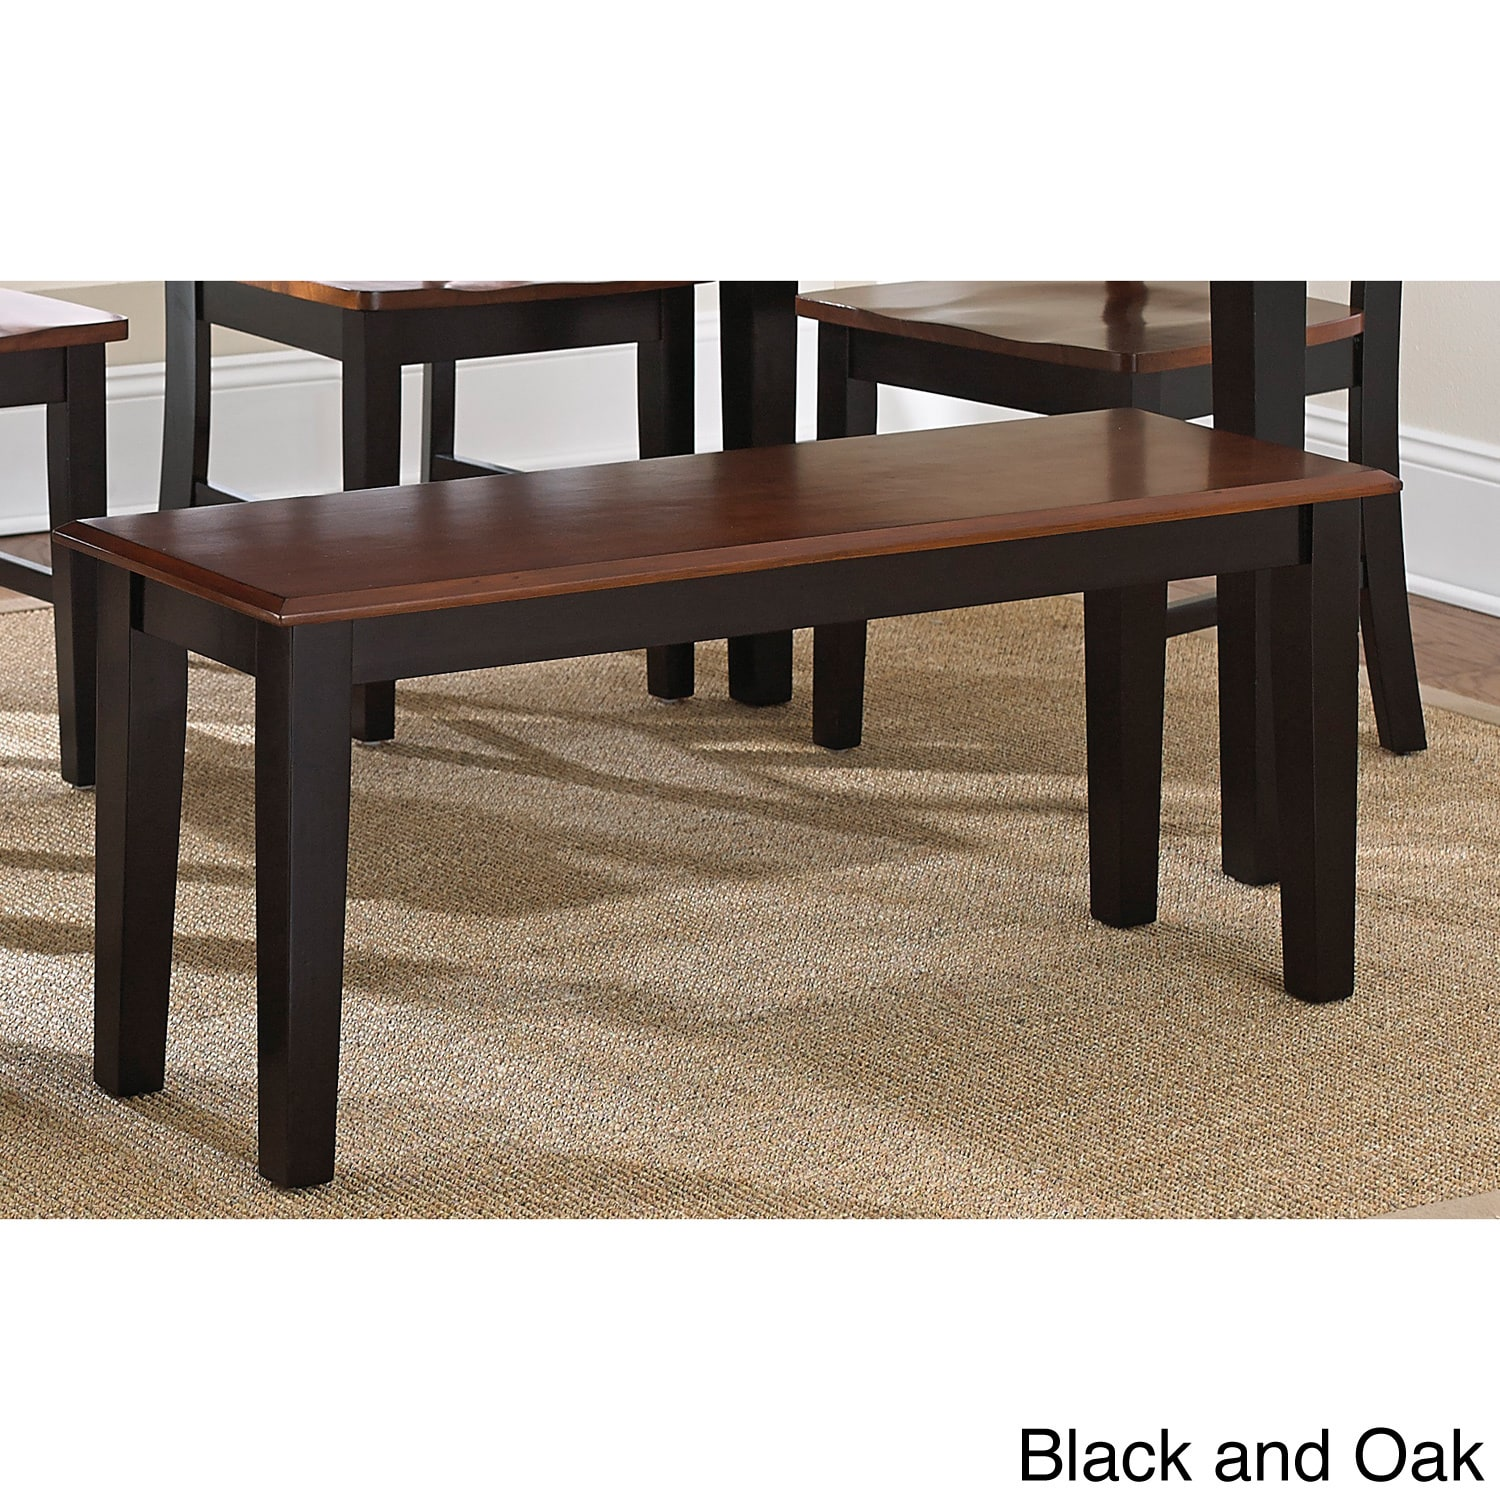 Peachy Keaton Dining Bench Hardwood Solids And Veneersfinish Oak Unemploymentrelief Wooden Chair Designs For Living Room Unemploymentrelieforg